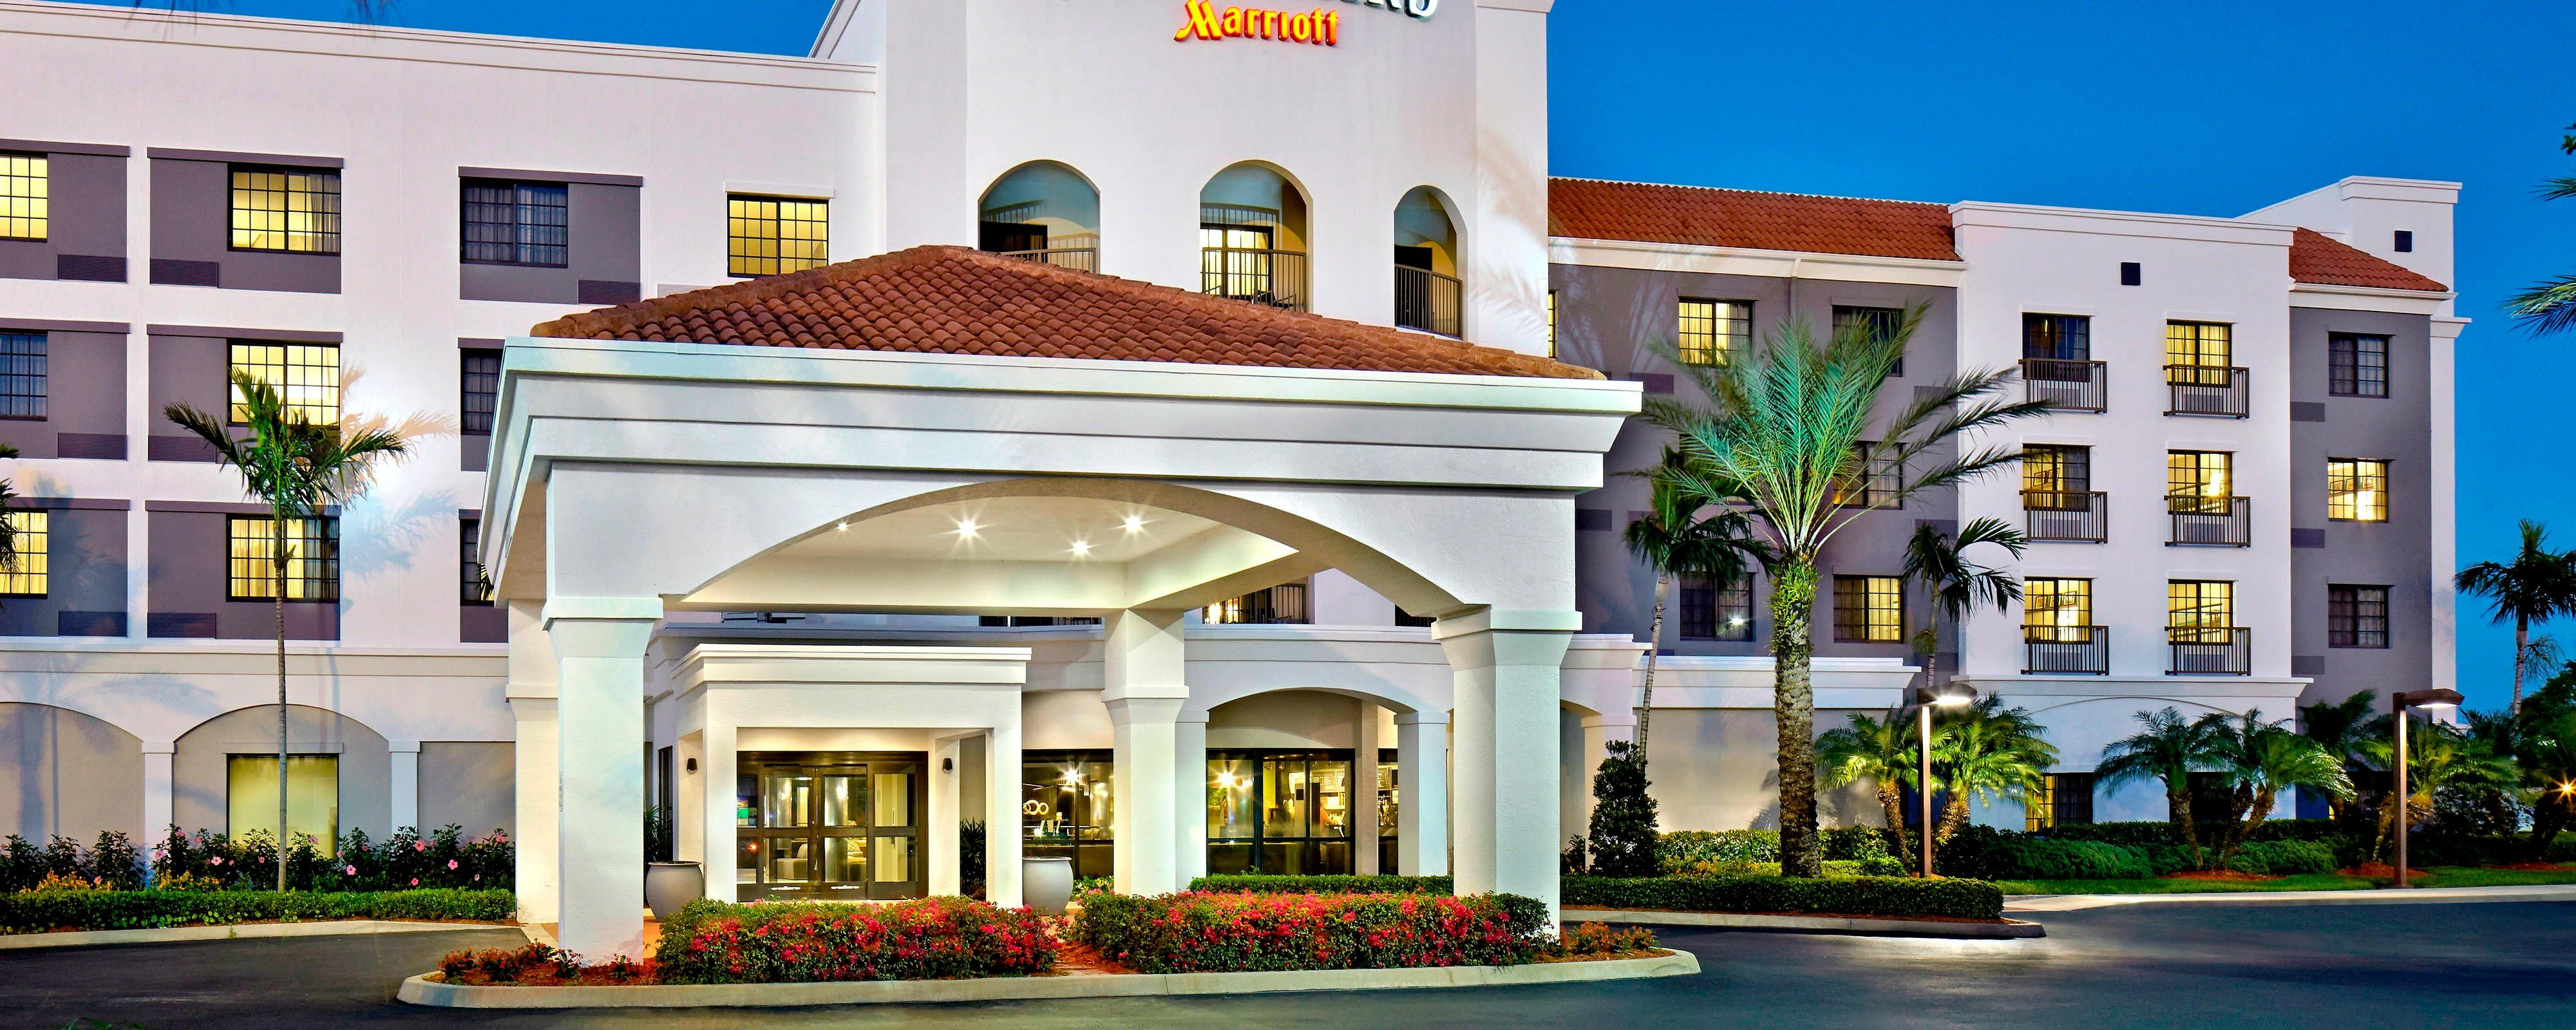 Courtyard By Marriott Stuart Fl The Premier Area Hotel Near Jupiter